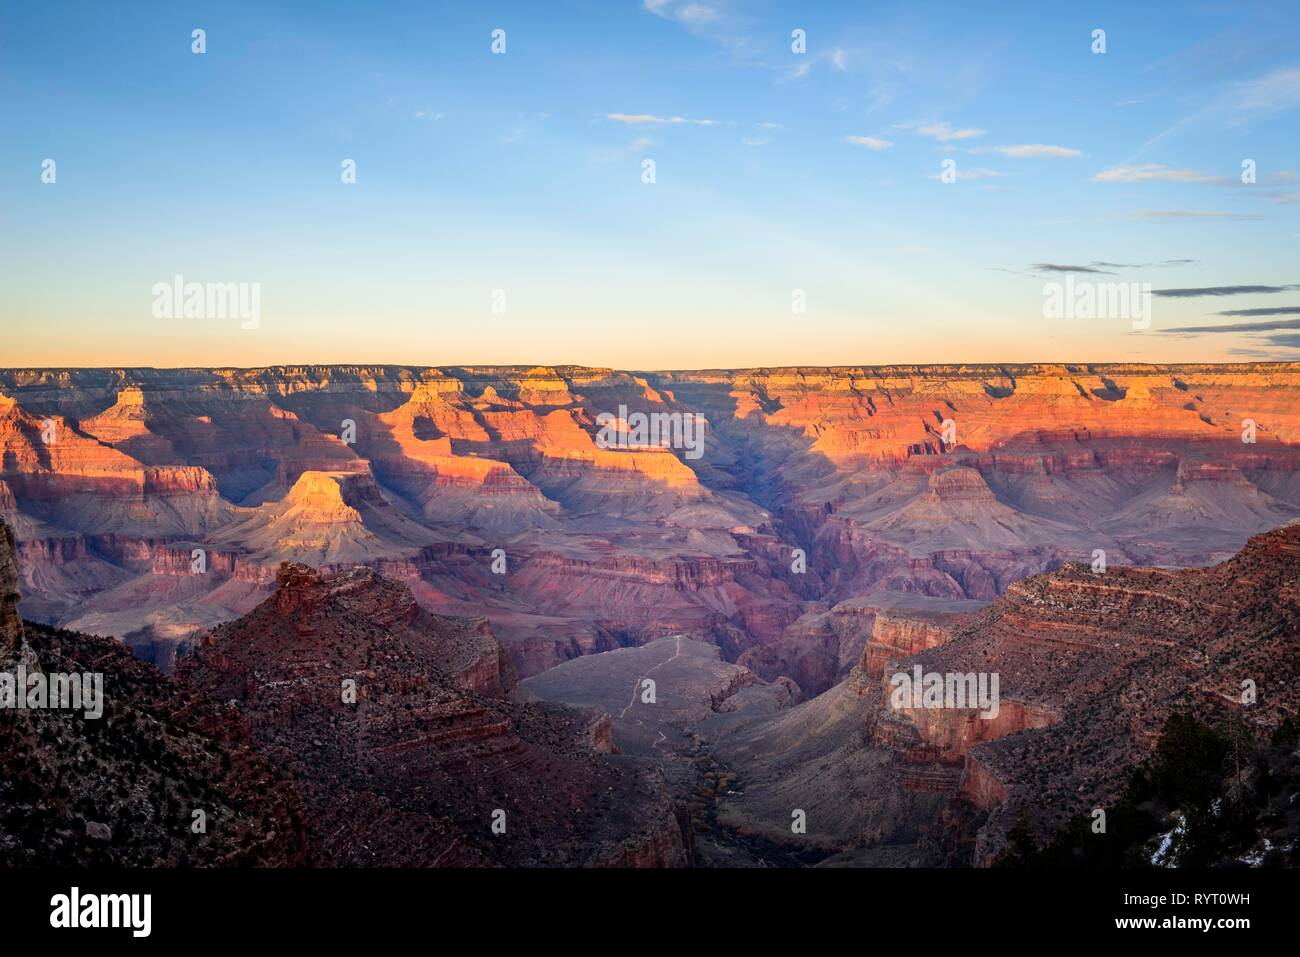 Gorge of the Grand Canyon, view from Bright Angel Trail, eroded rock landscape, South Rim, Grand Canyon National Park - Stock Image